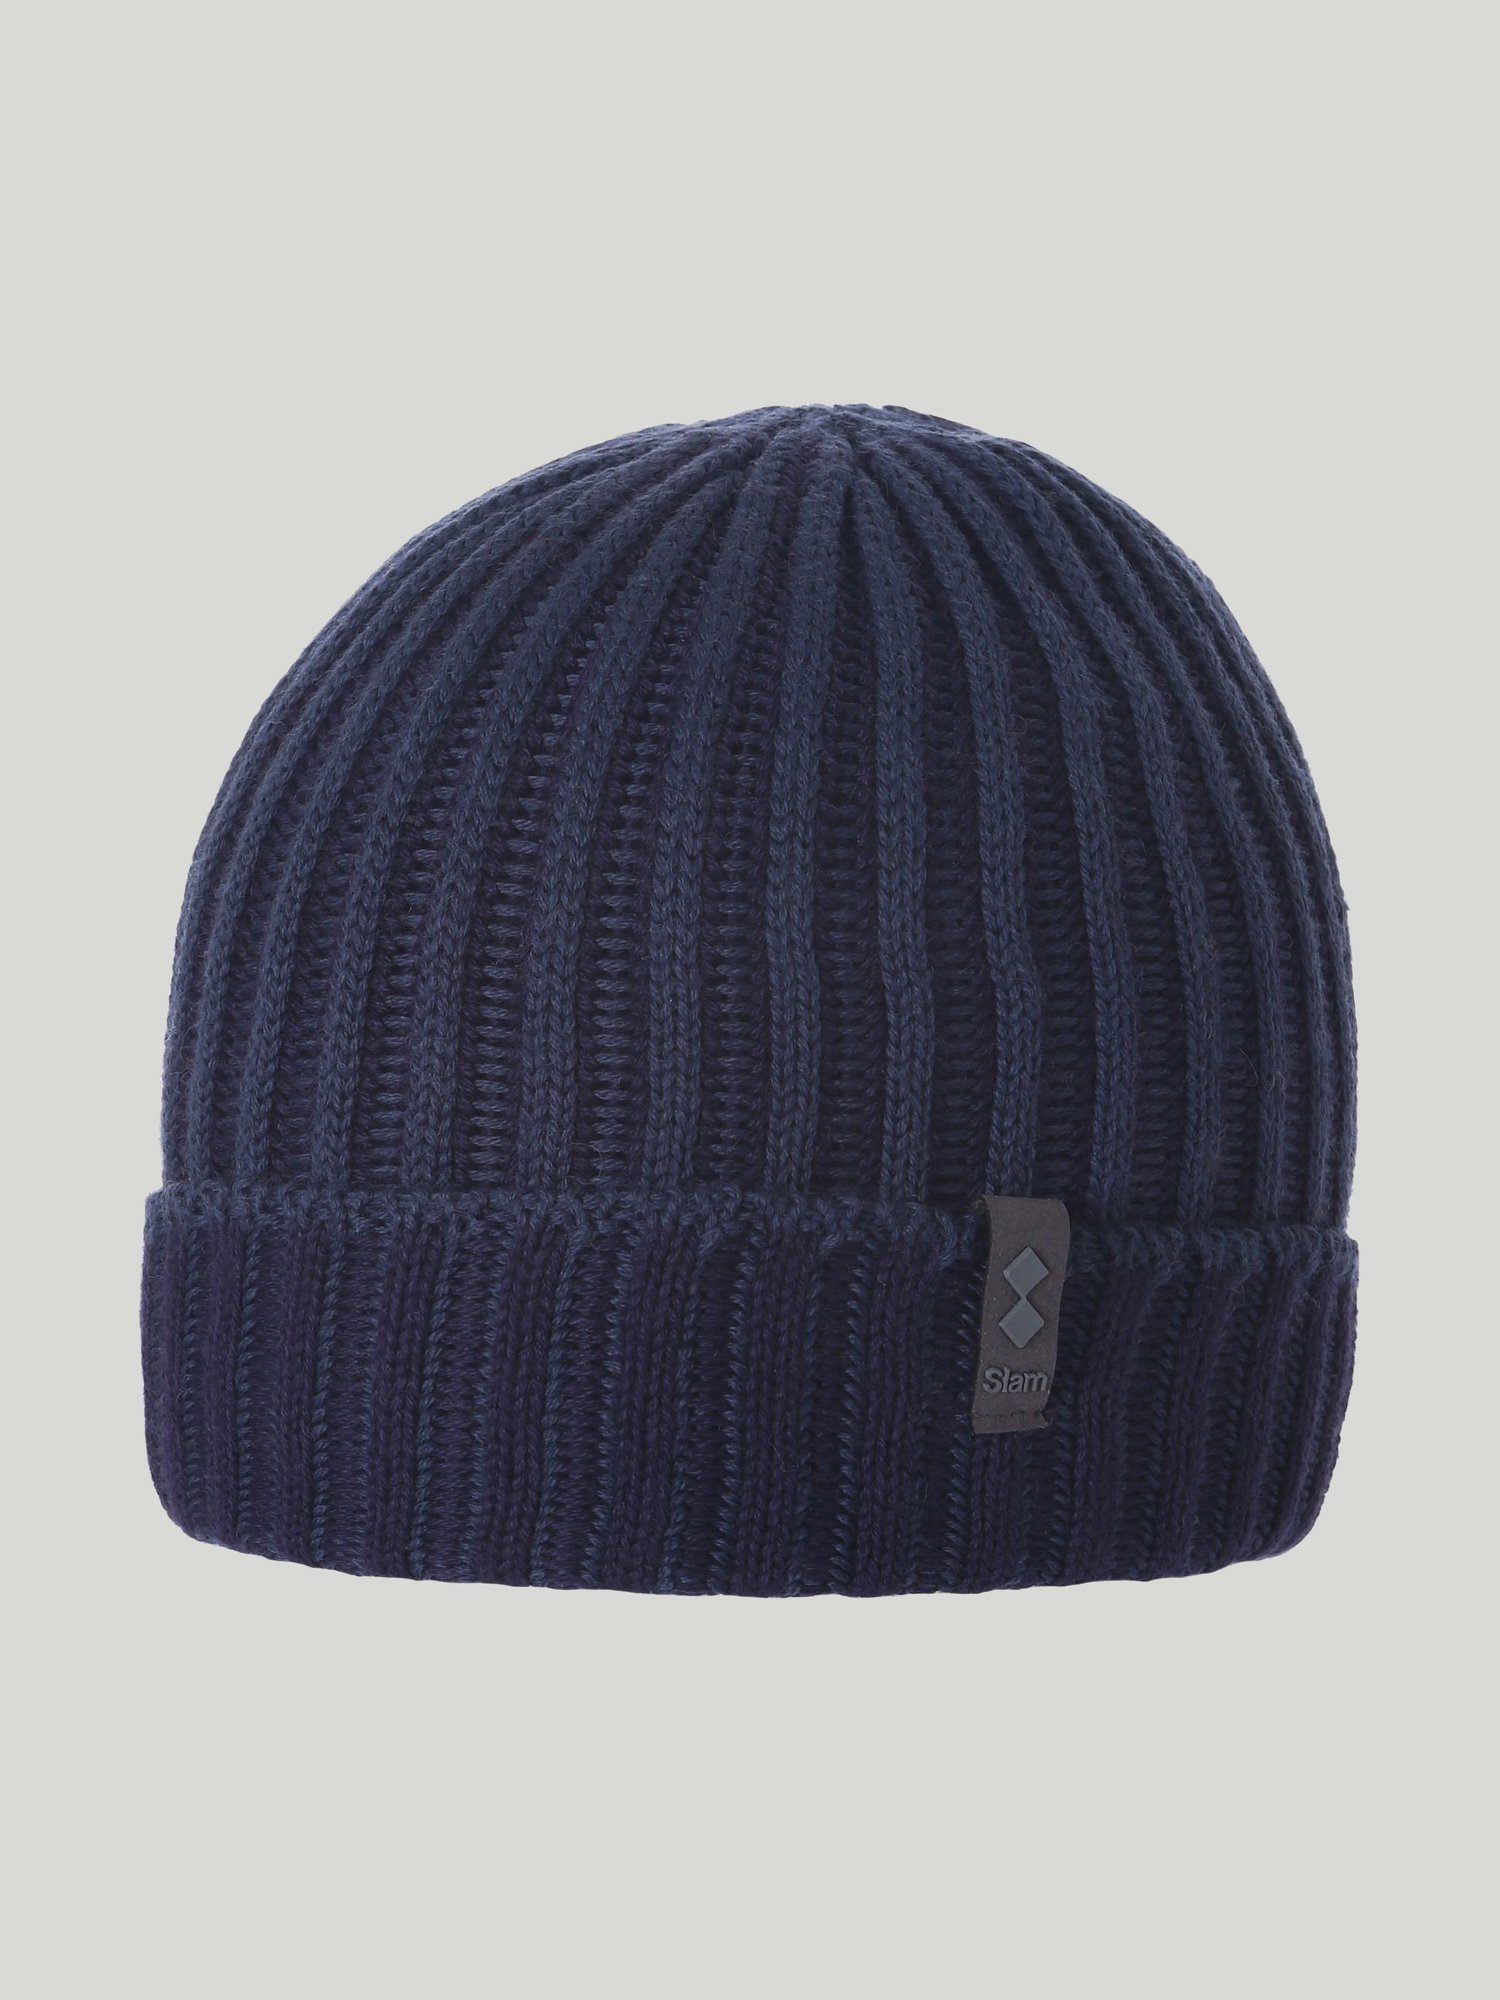 HAT CALINO - Dark Indigo